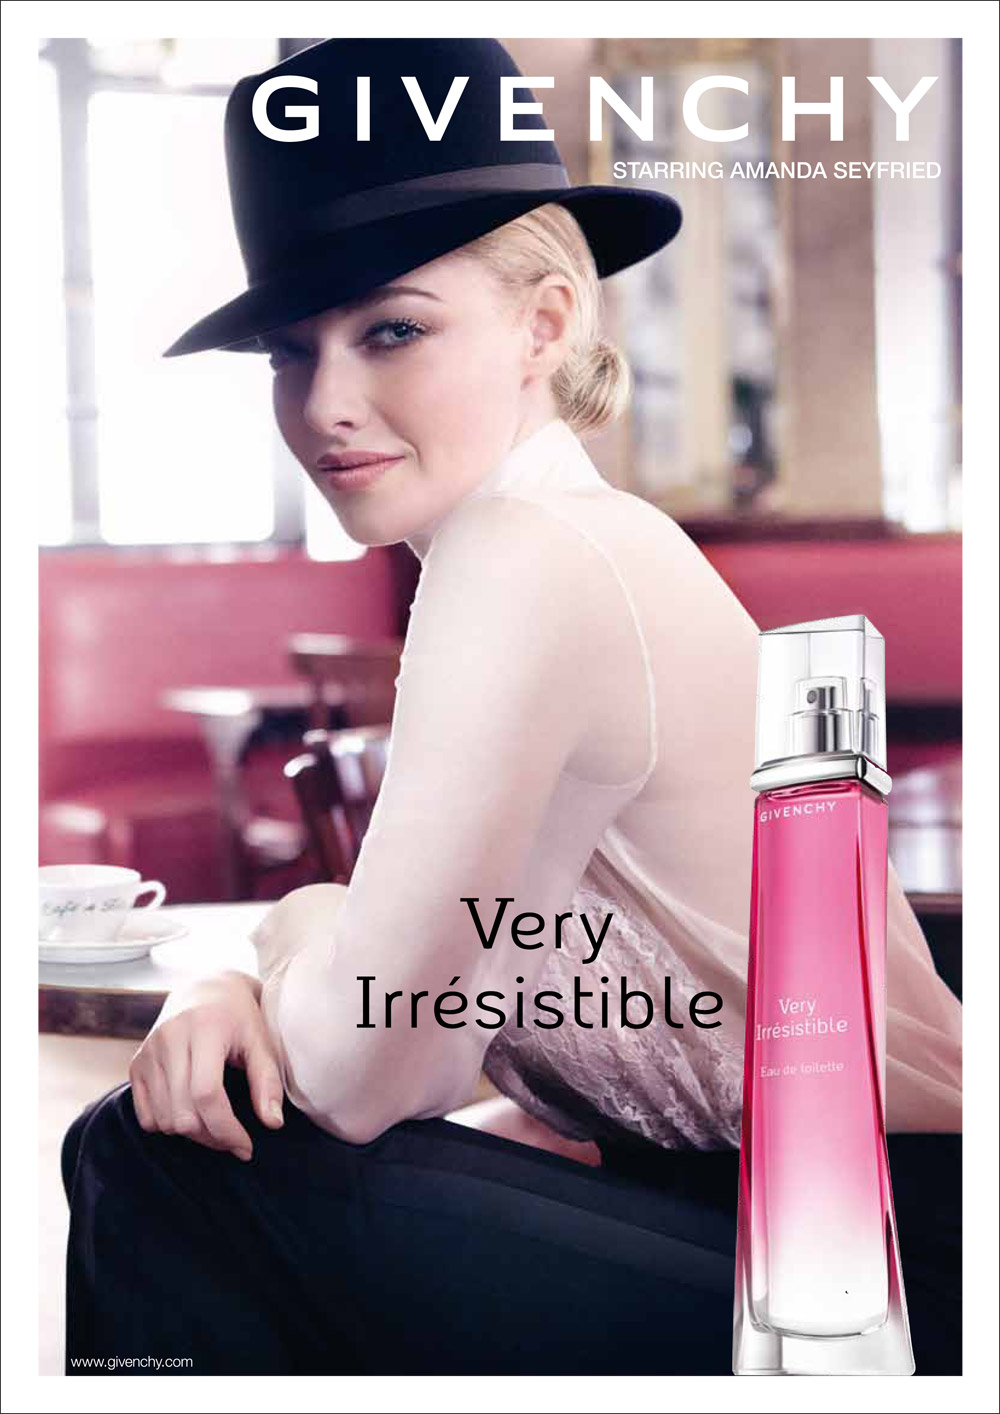 Ddb Parfum Luxe Givenchy Irrésistible Very Pour 8wPXNnk0O